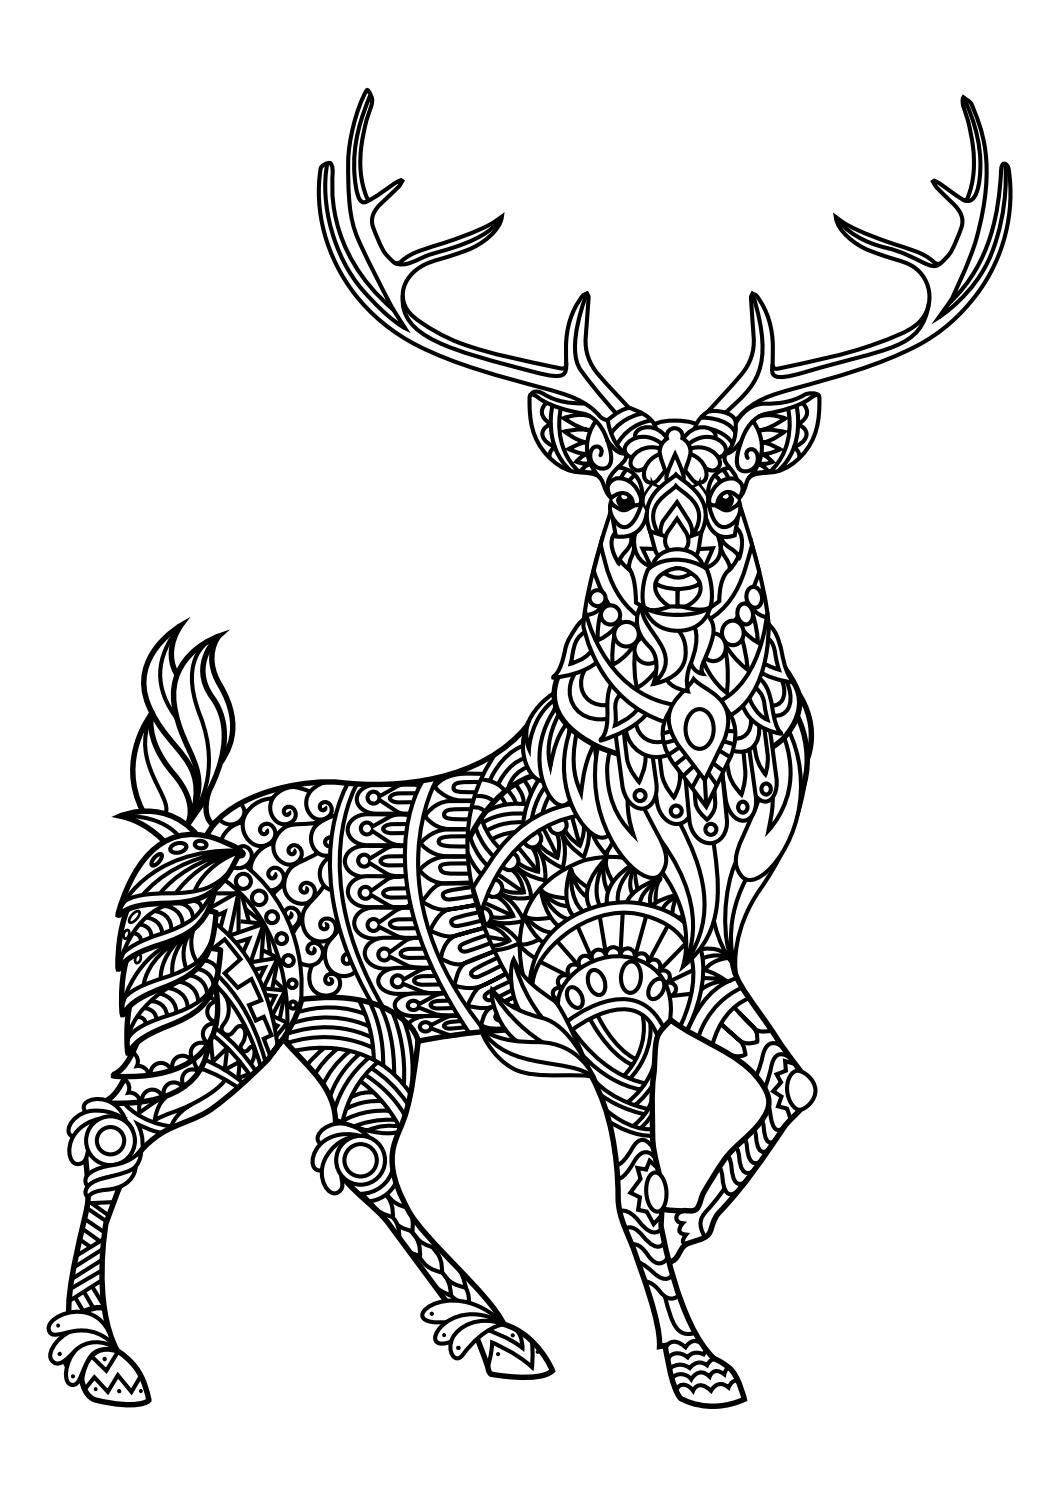 Animal coloring pages pdf Coloring Animals Animal